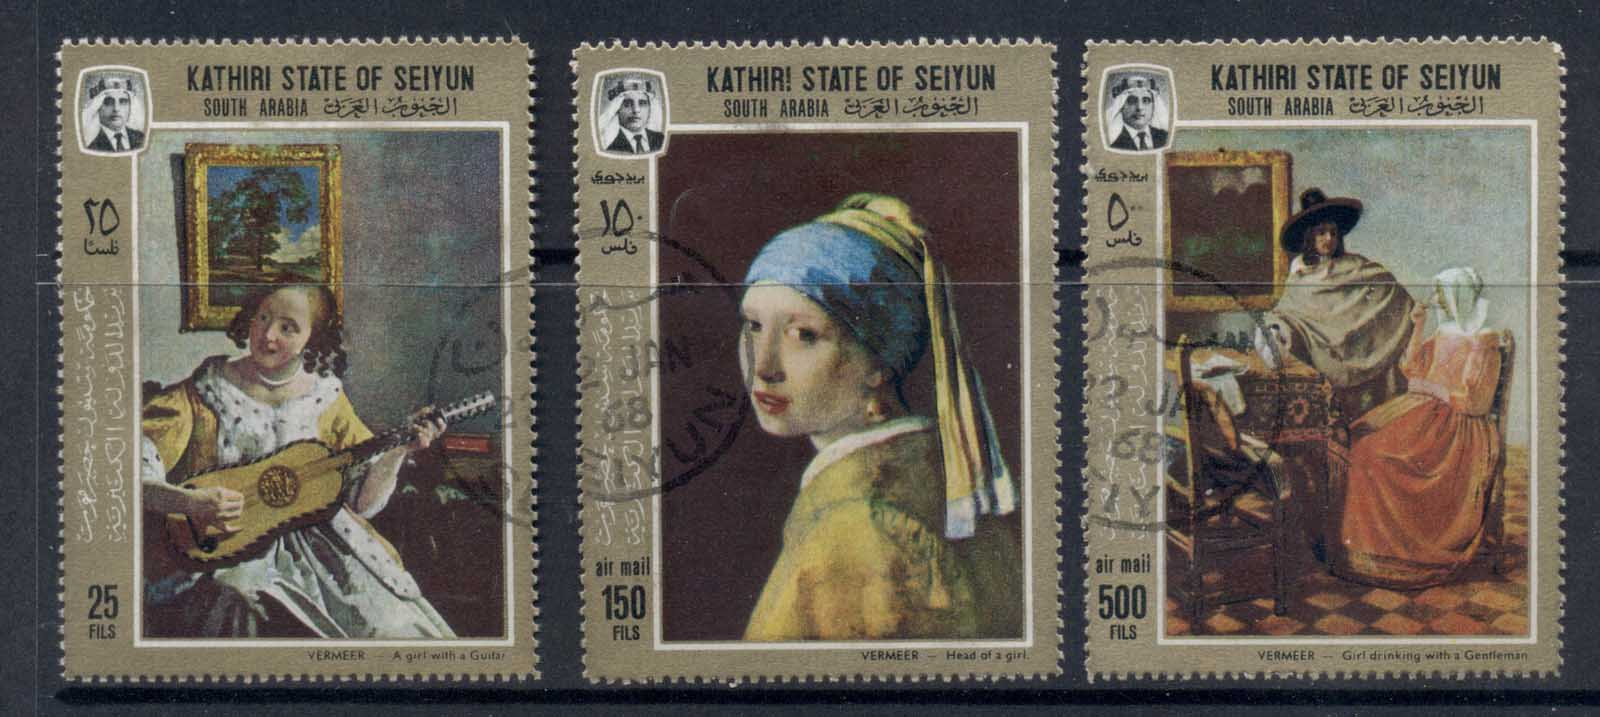 Aden Kathiri State of Seiyun 1967 Mi#160-162 Paintings by Jan Vermeer van Delft CTO